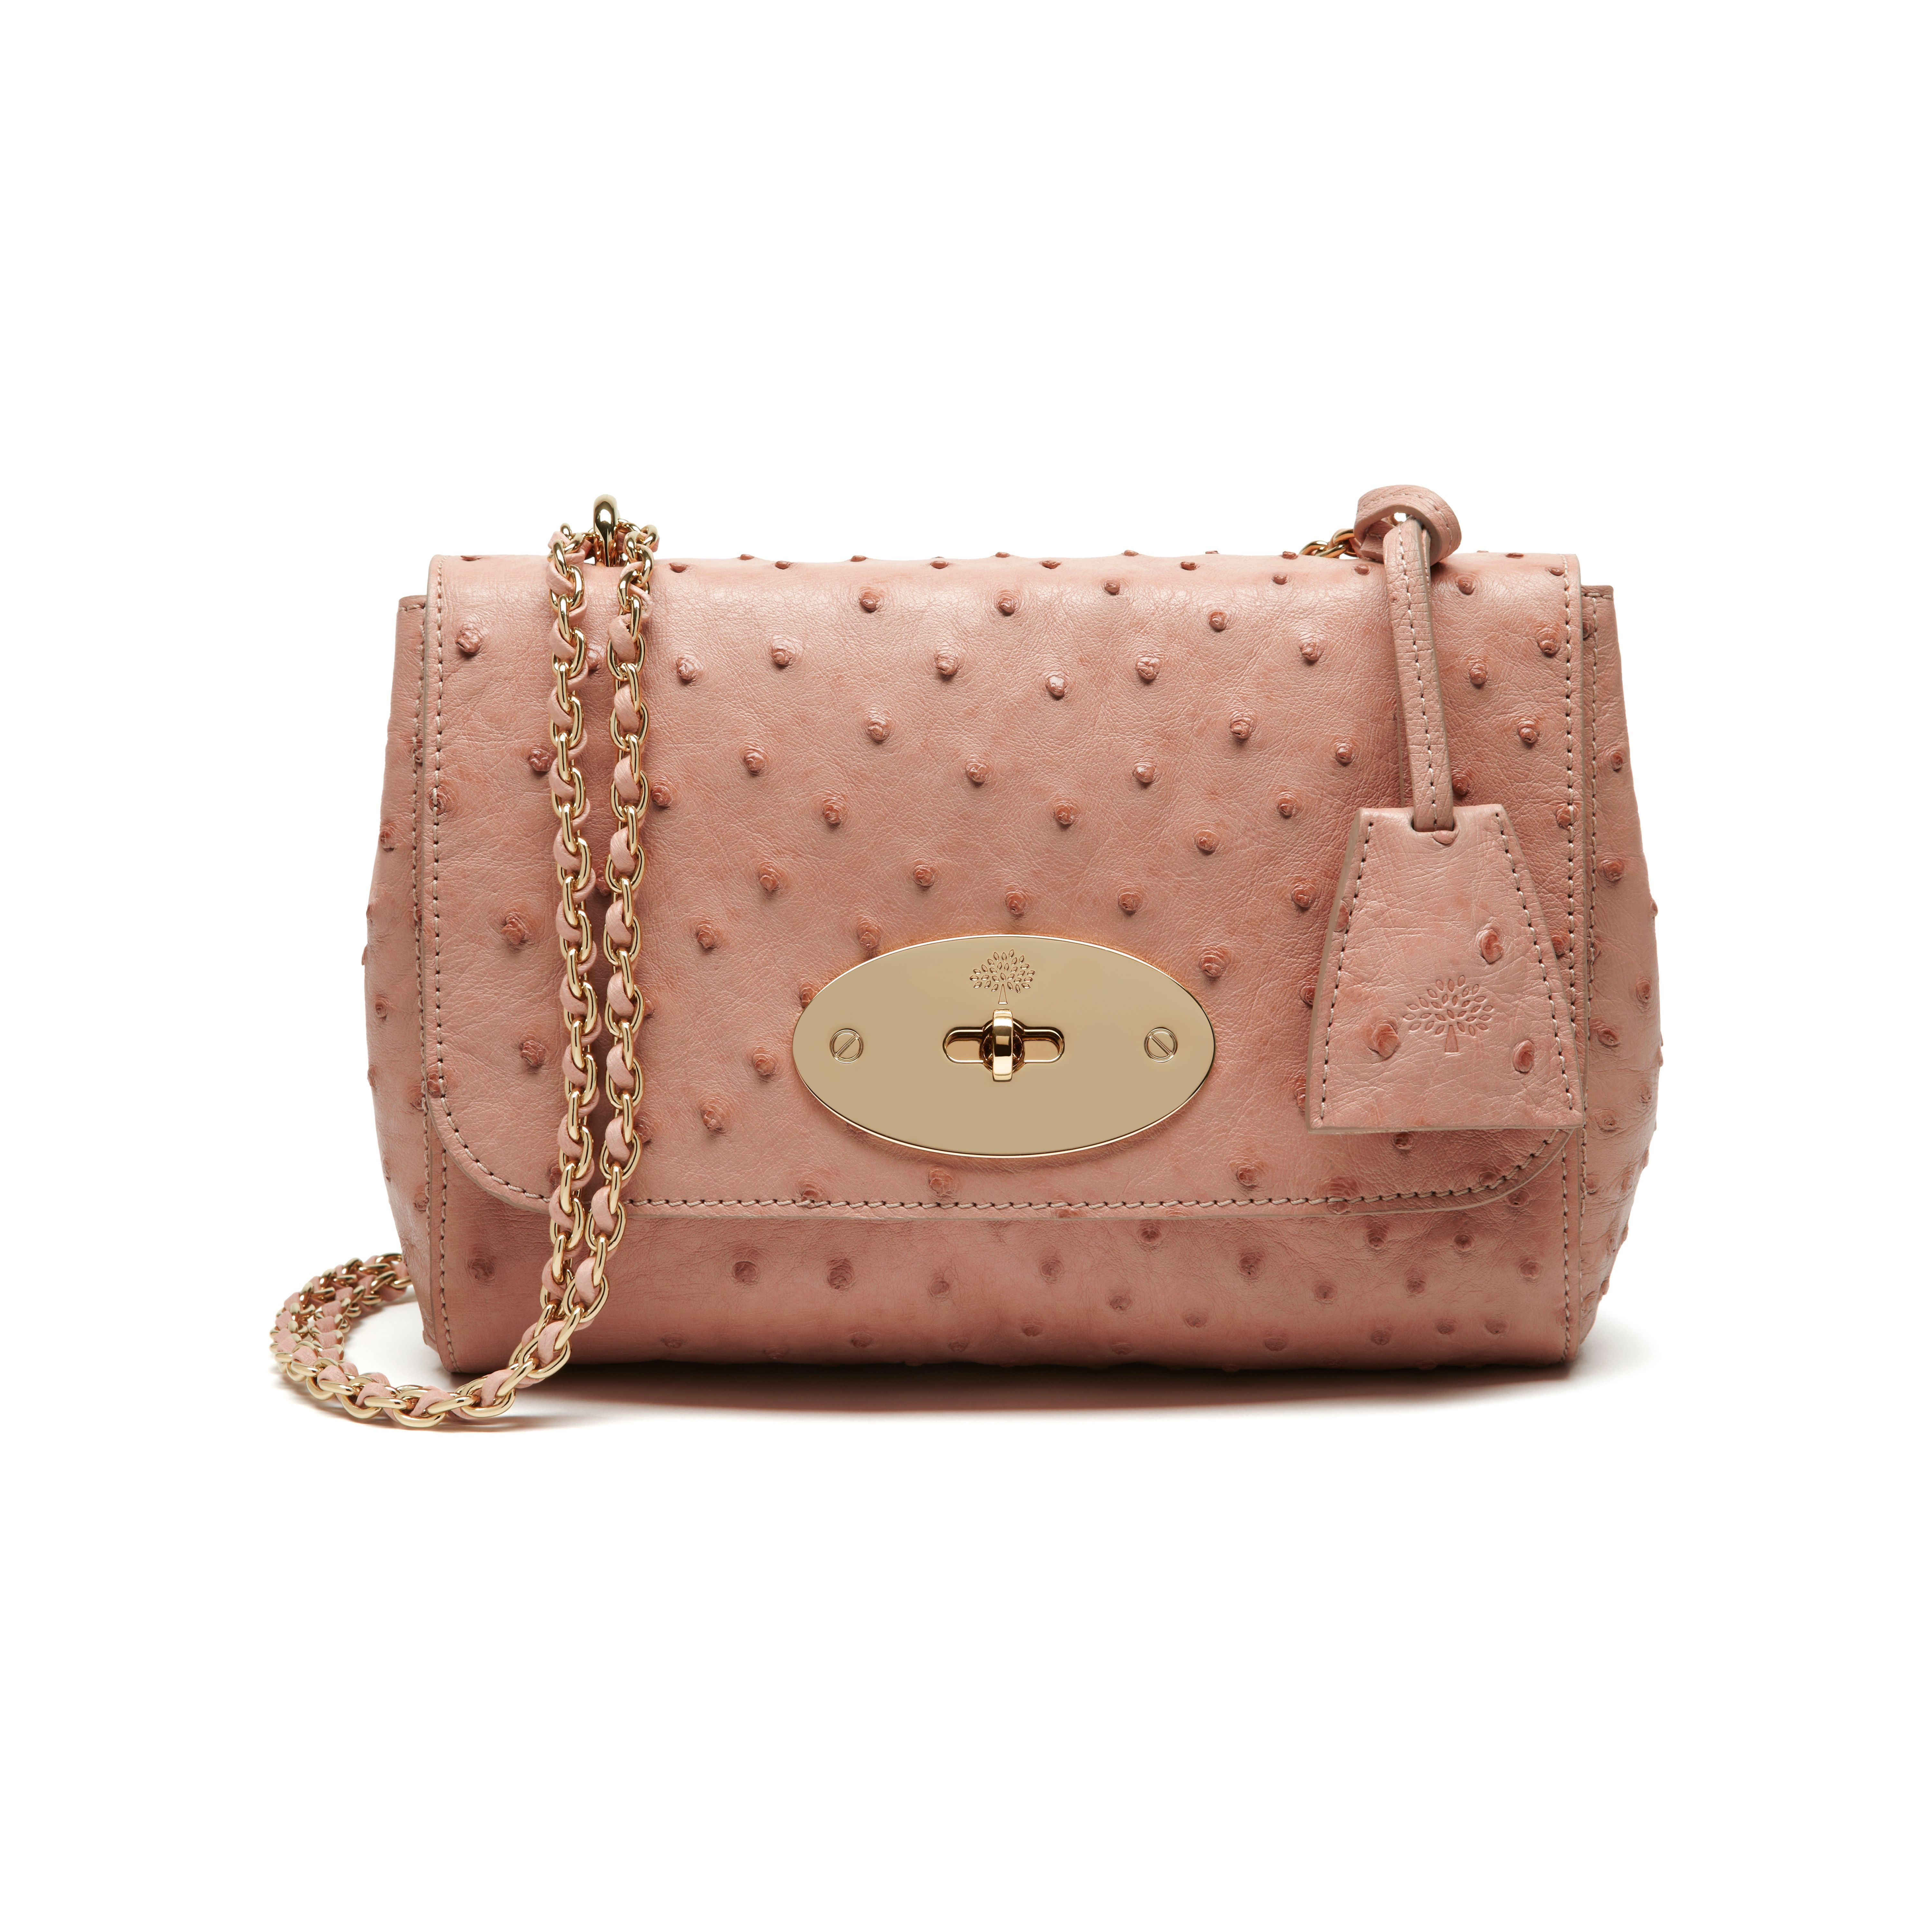 5c89cdde70 Mulberry - Lily in Rose Petal Ostrich